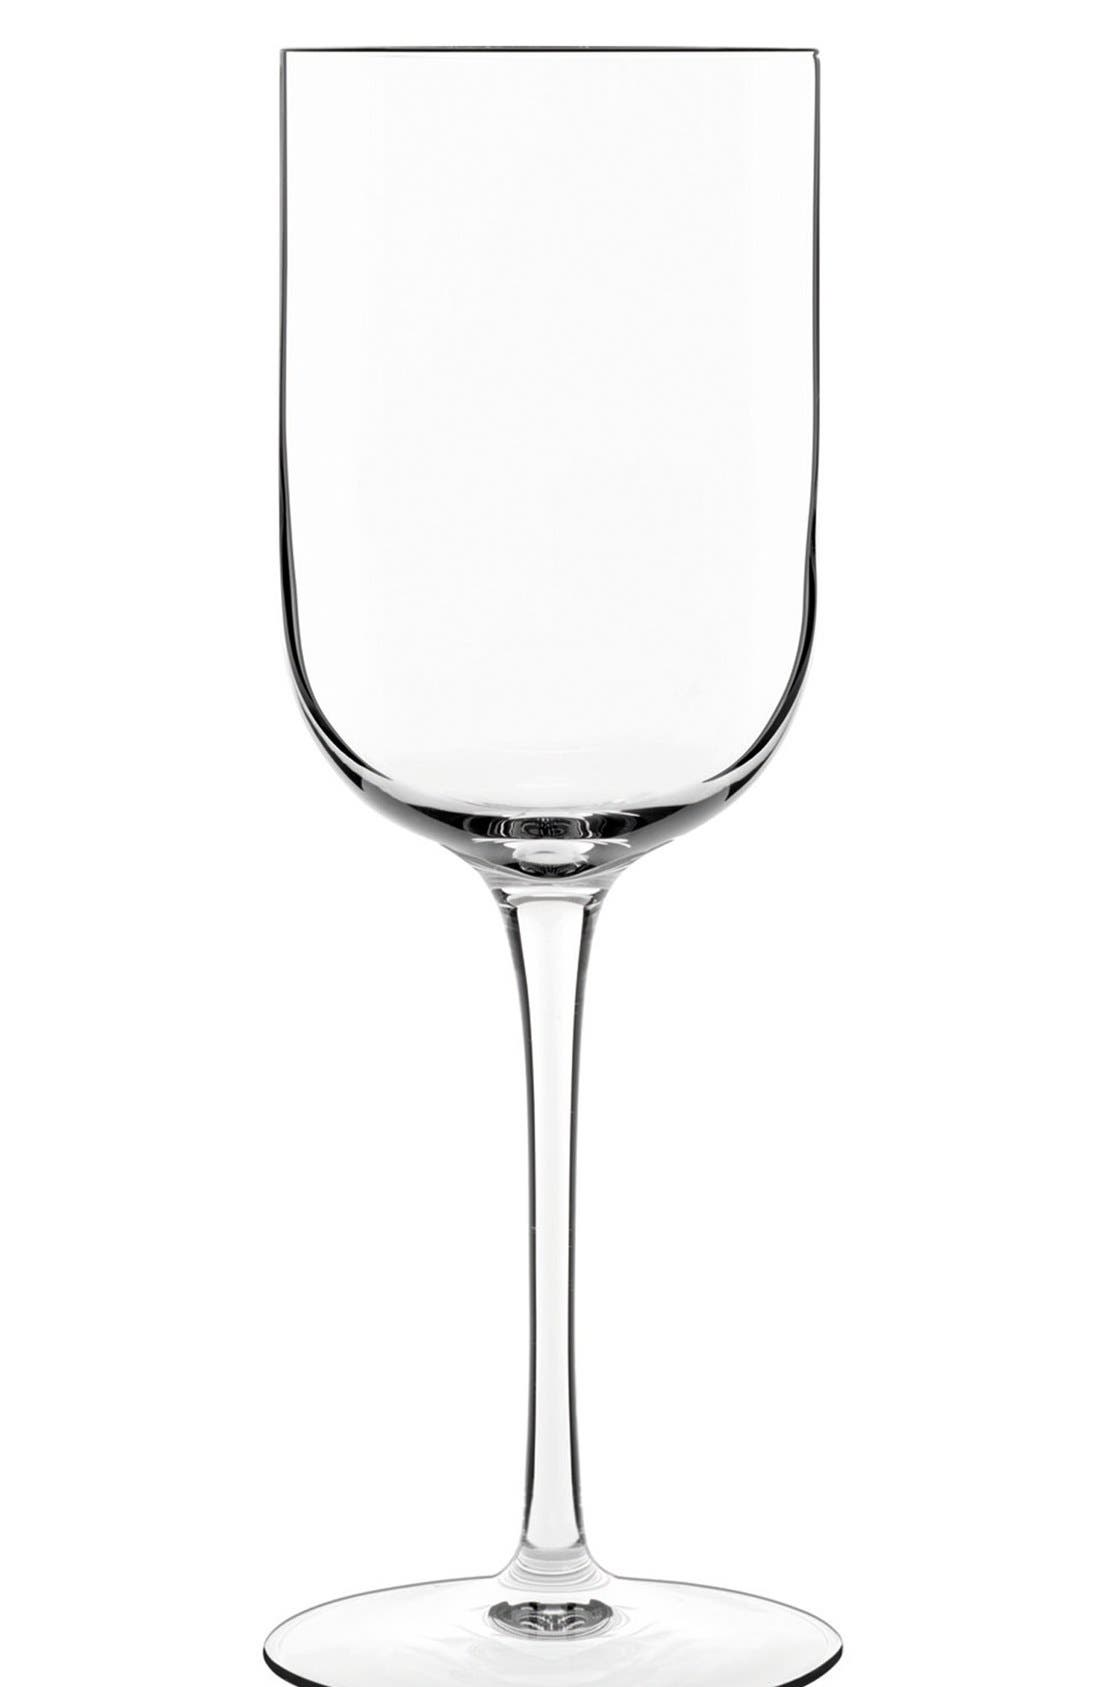 Main Image - Luigi Bormioli 'Sublime' White Wine Glasses (Set of 4)